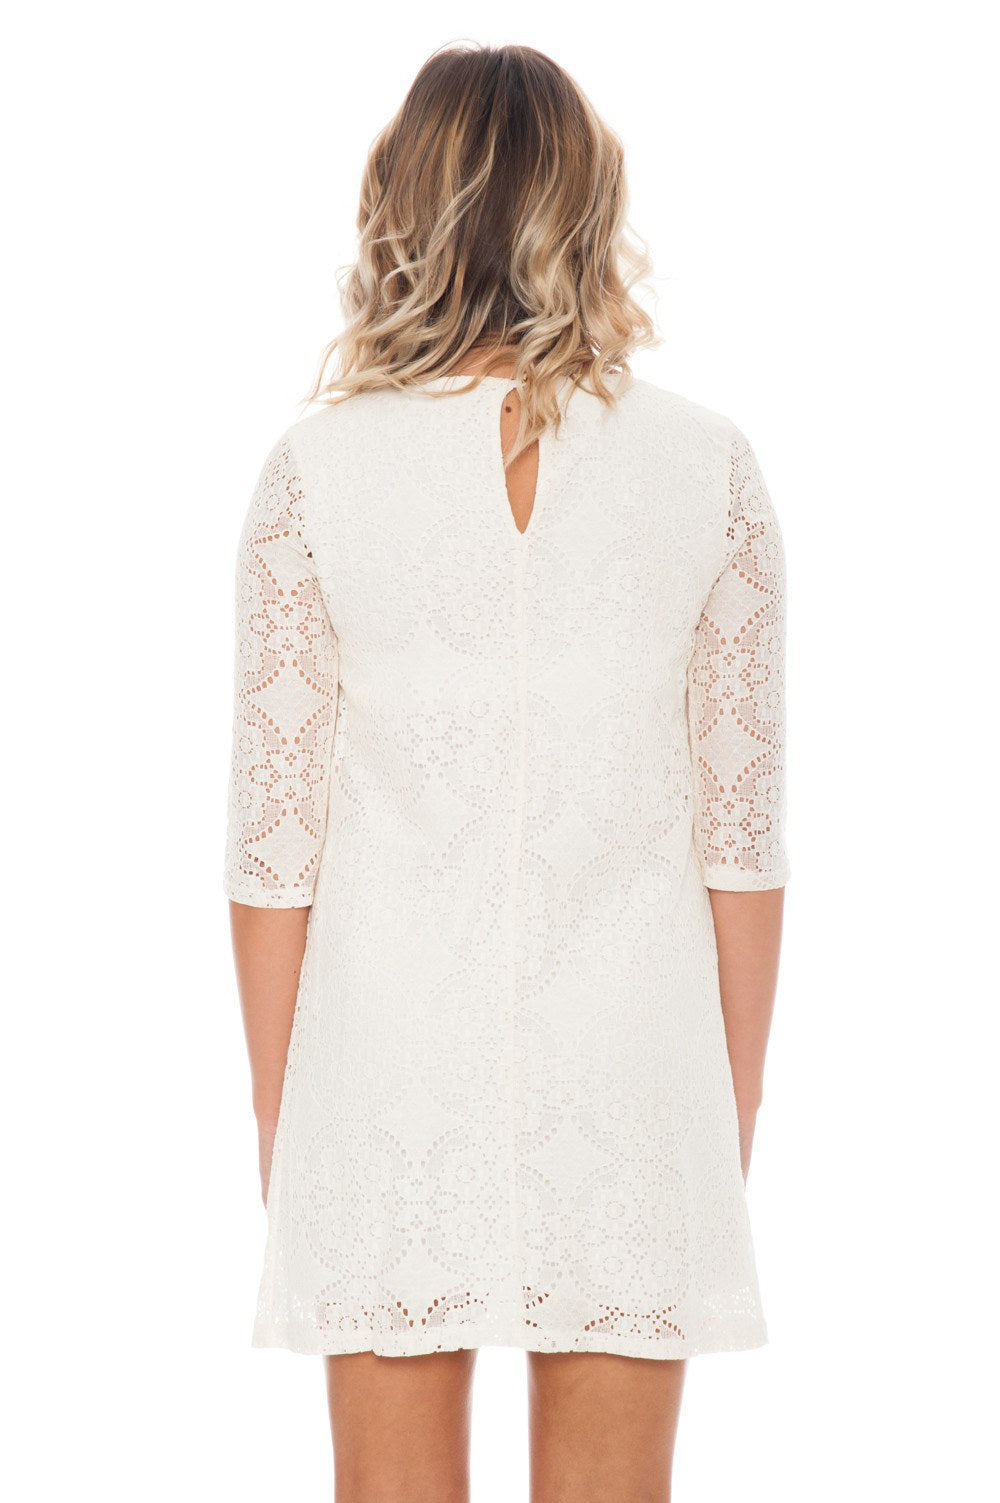 Dress - Shift Lace - 3